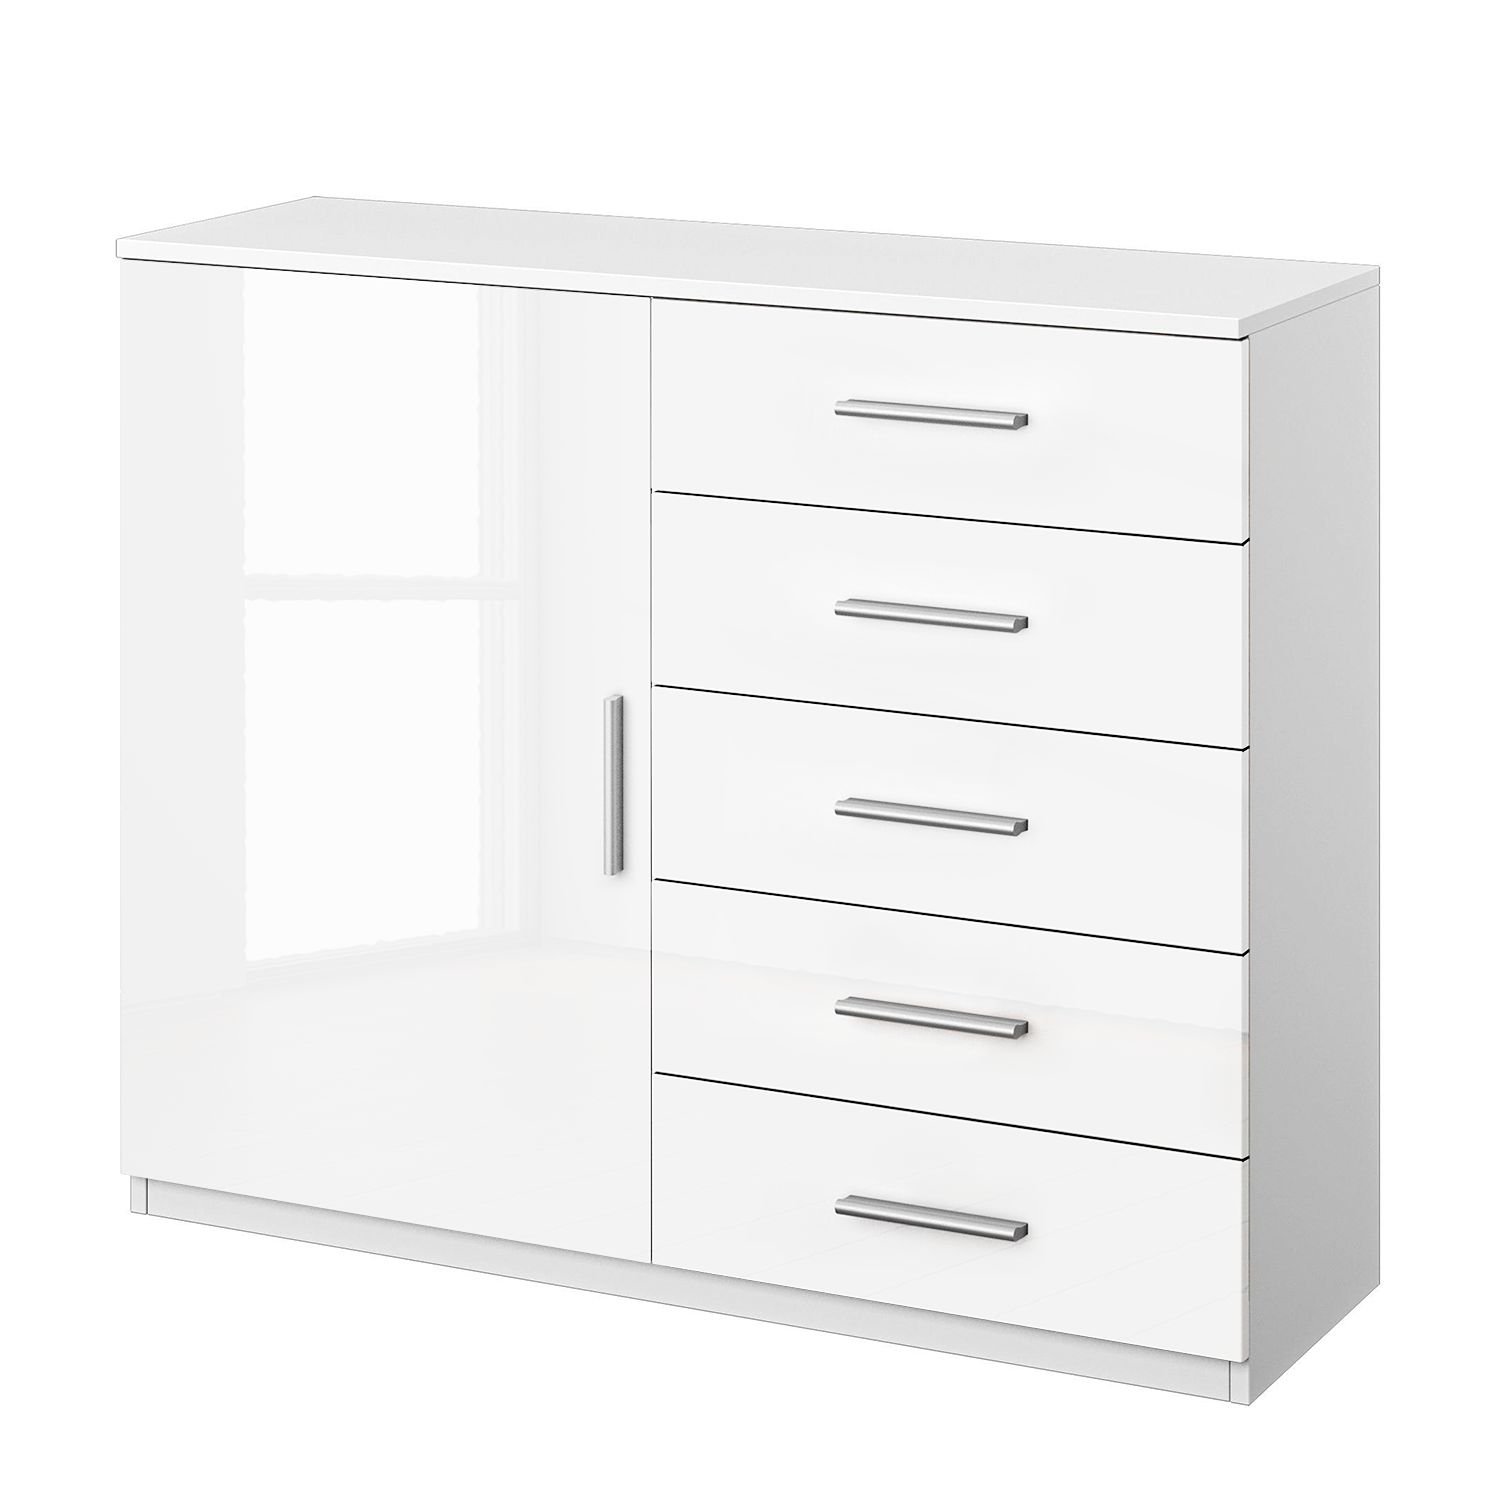 Commode Celle II - Blanc alpin / Blanc brillant, Rauch Packs